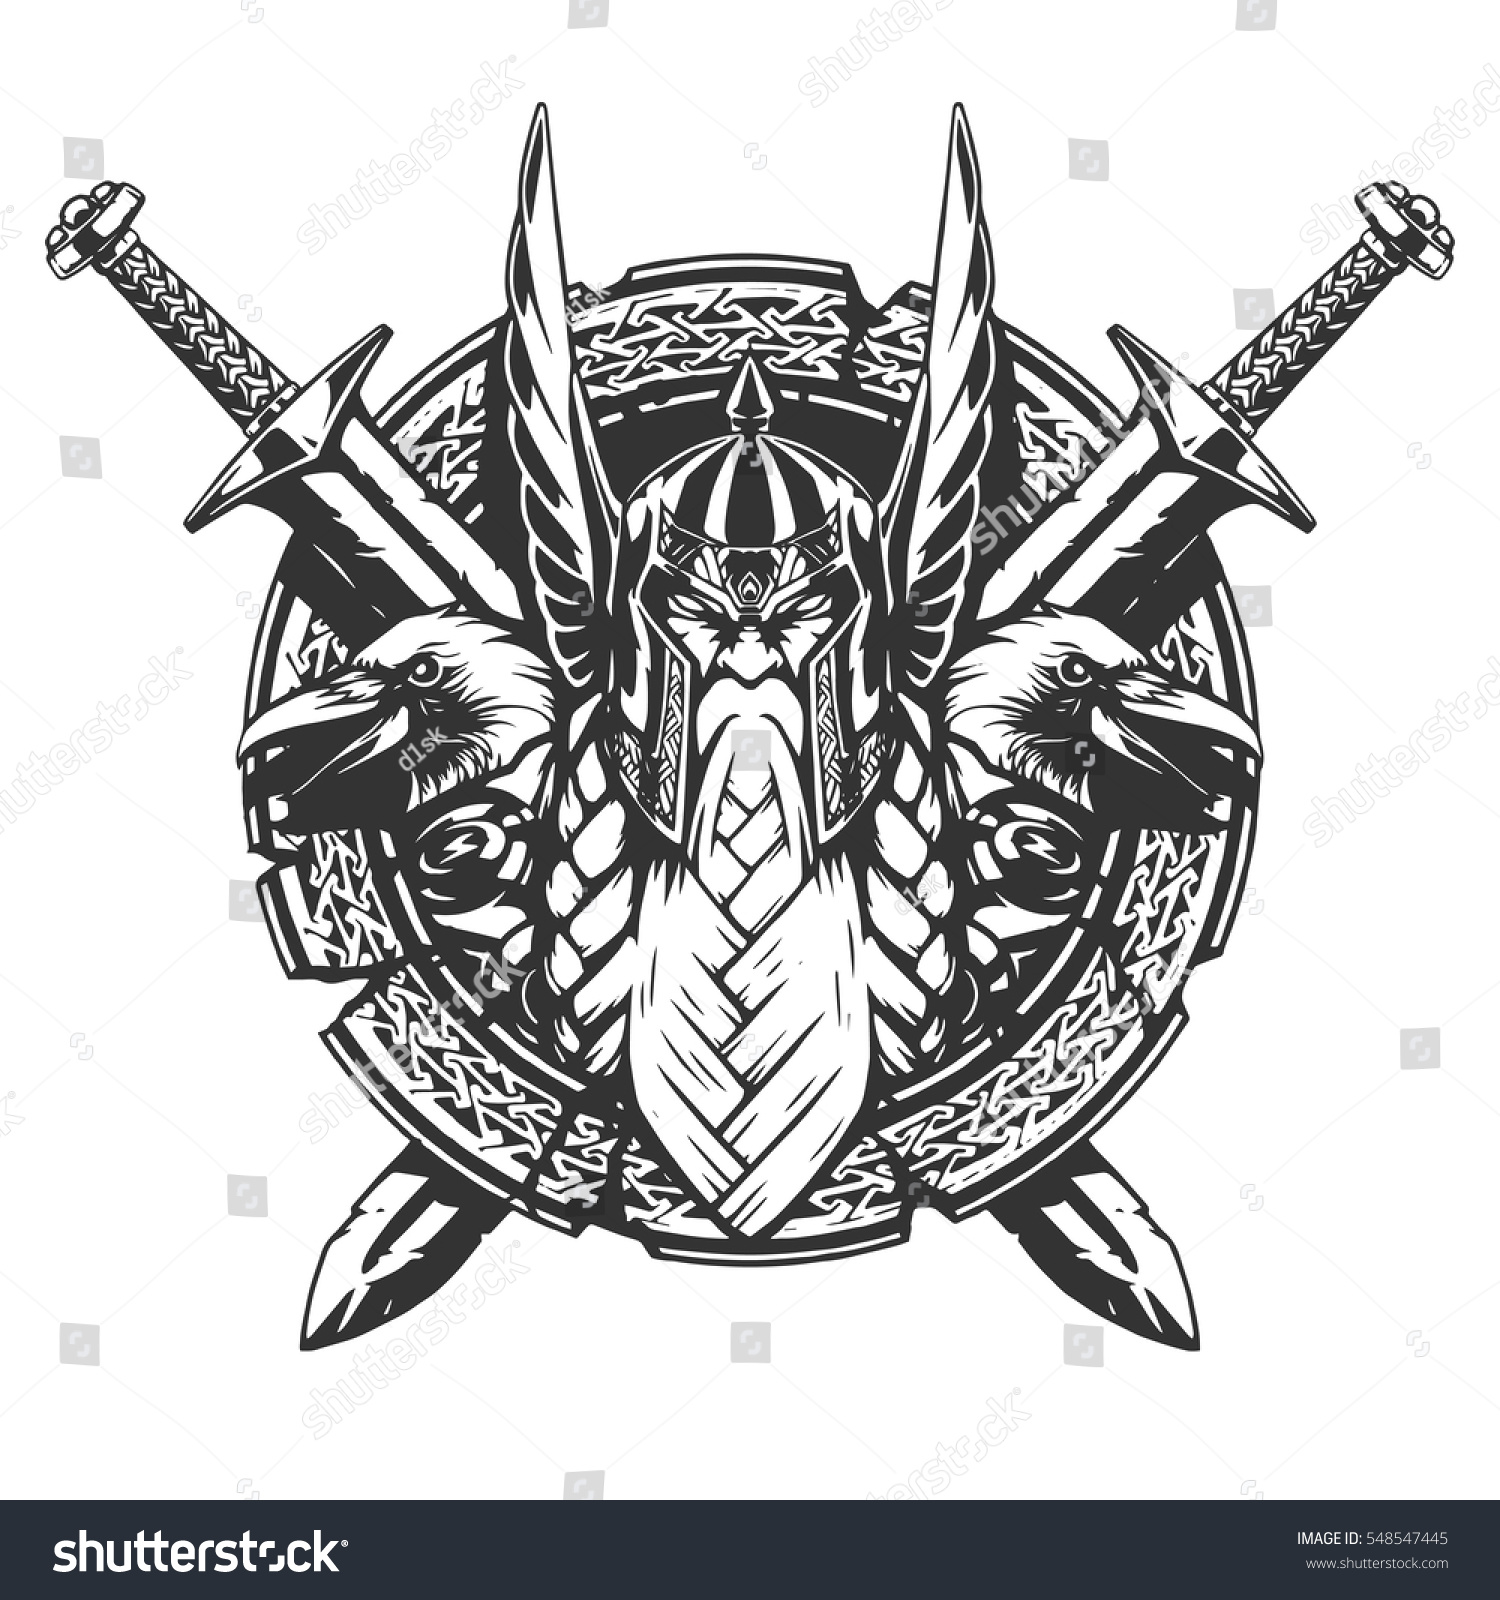 Illustration Tattoos: God Odin Illustration Tattoo Style Stock Vector 548547445